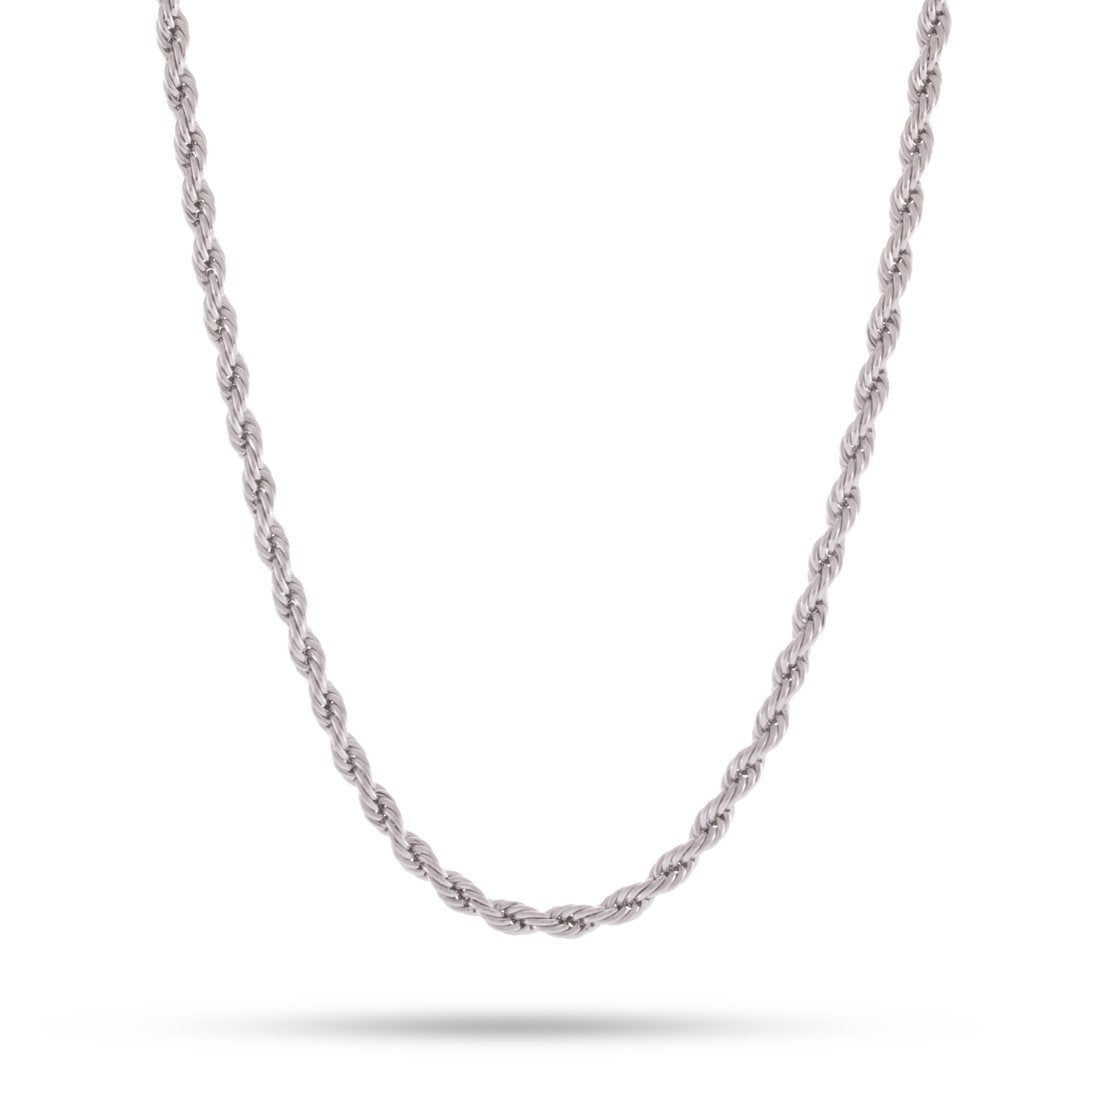 14K Silver Plated White Gold Rope Chain